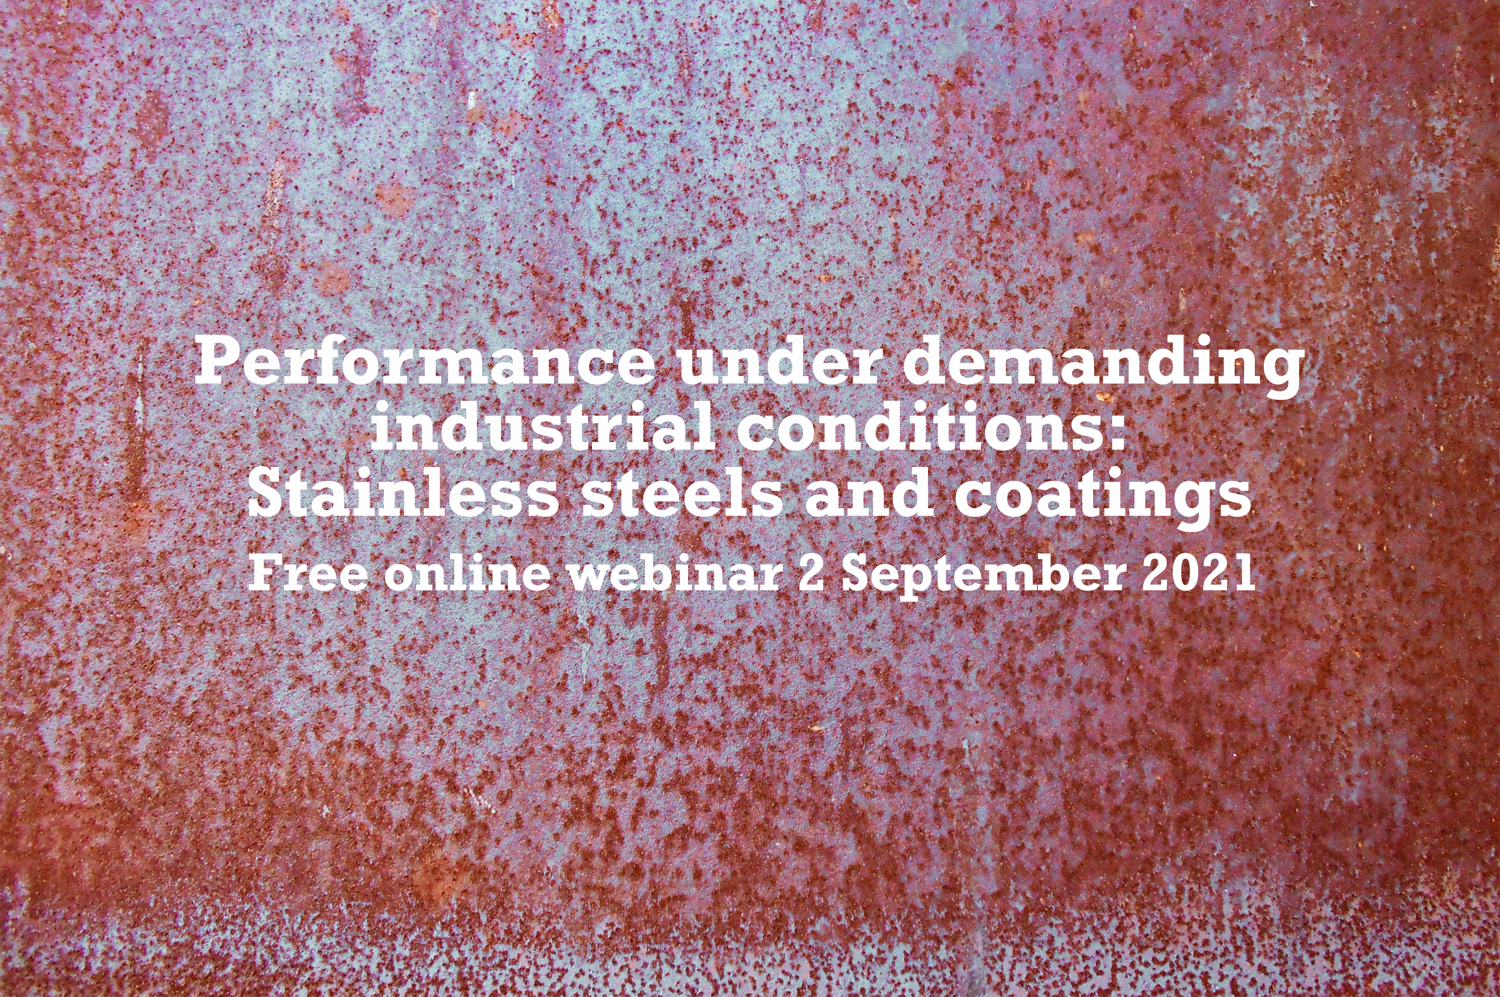 Performance under demanding industrial conditions text in a rusty surface